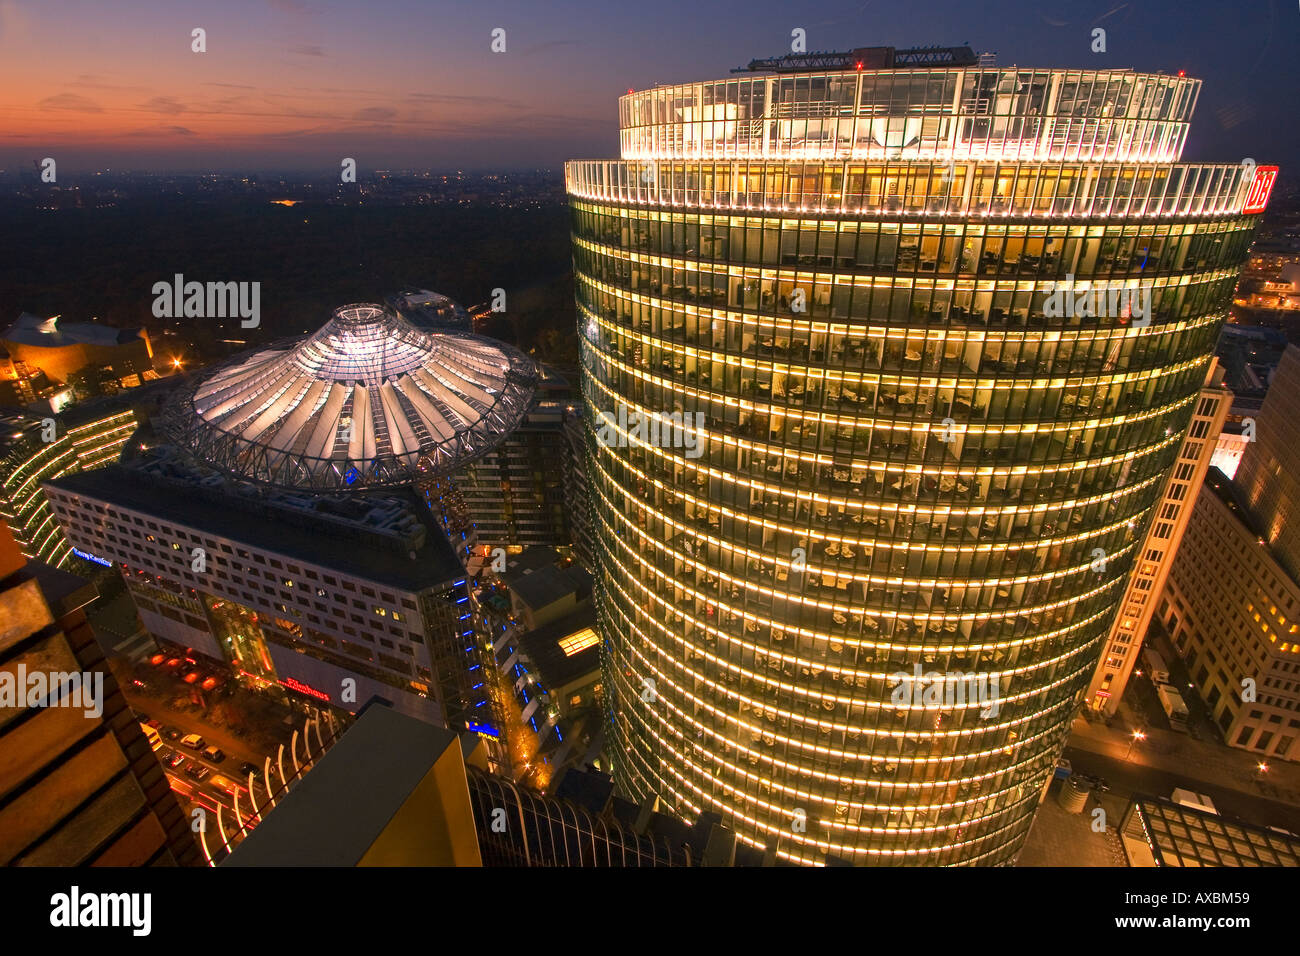 Berlin Potsdamer Platz Sony Center Atrium umbrella roof new forum covered by a cupola arch architecture by Helmut Jahn Murphy - Stock Image